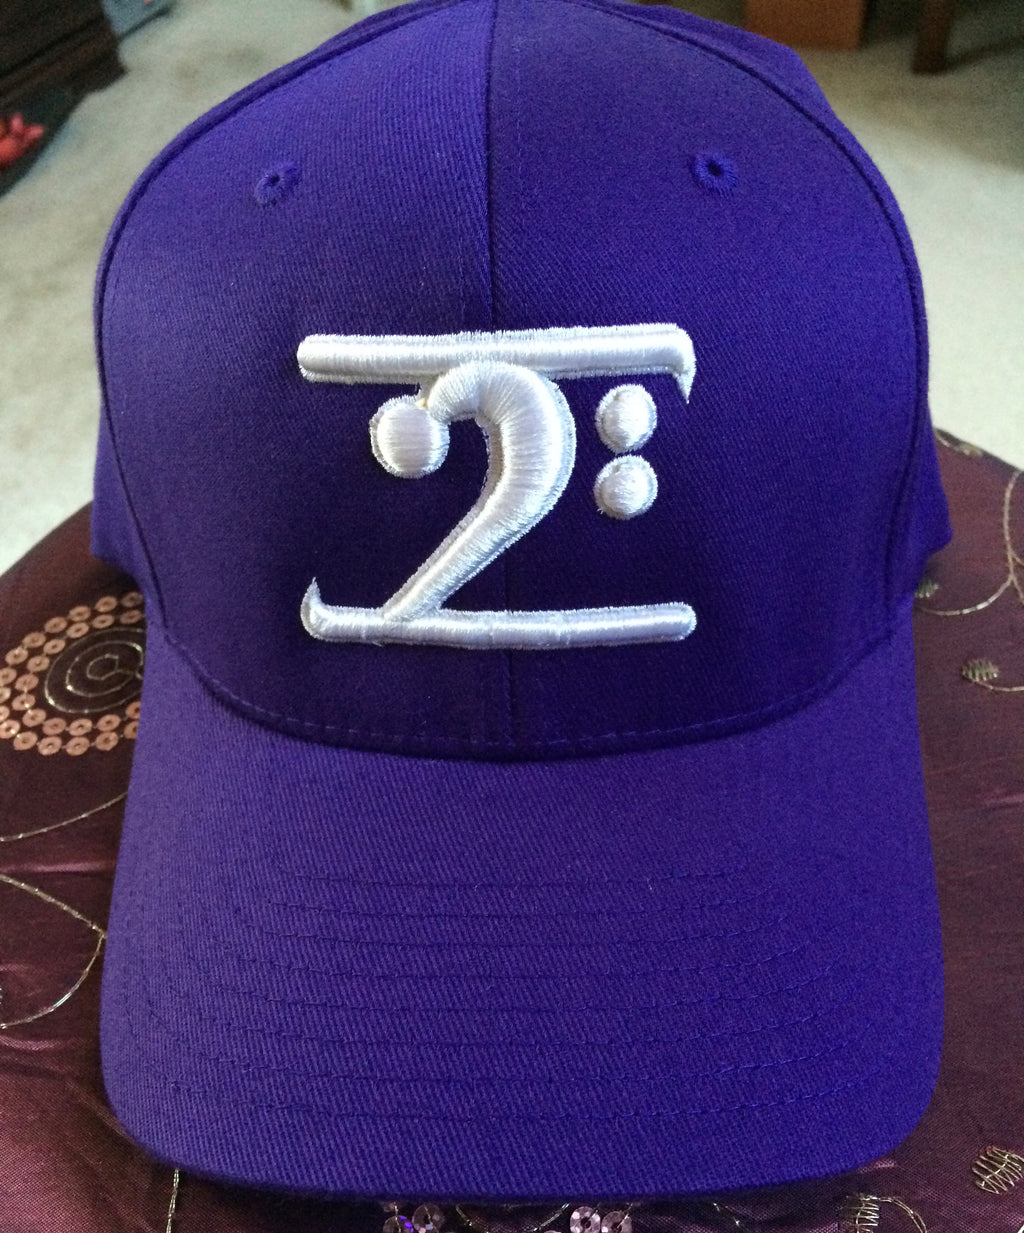 PURPLE LOGO CAP - WHITE LOGO